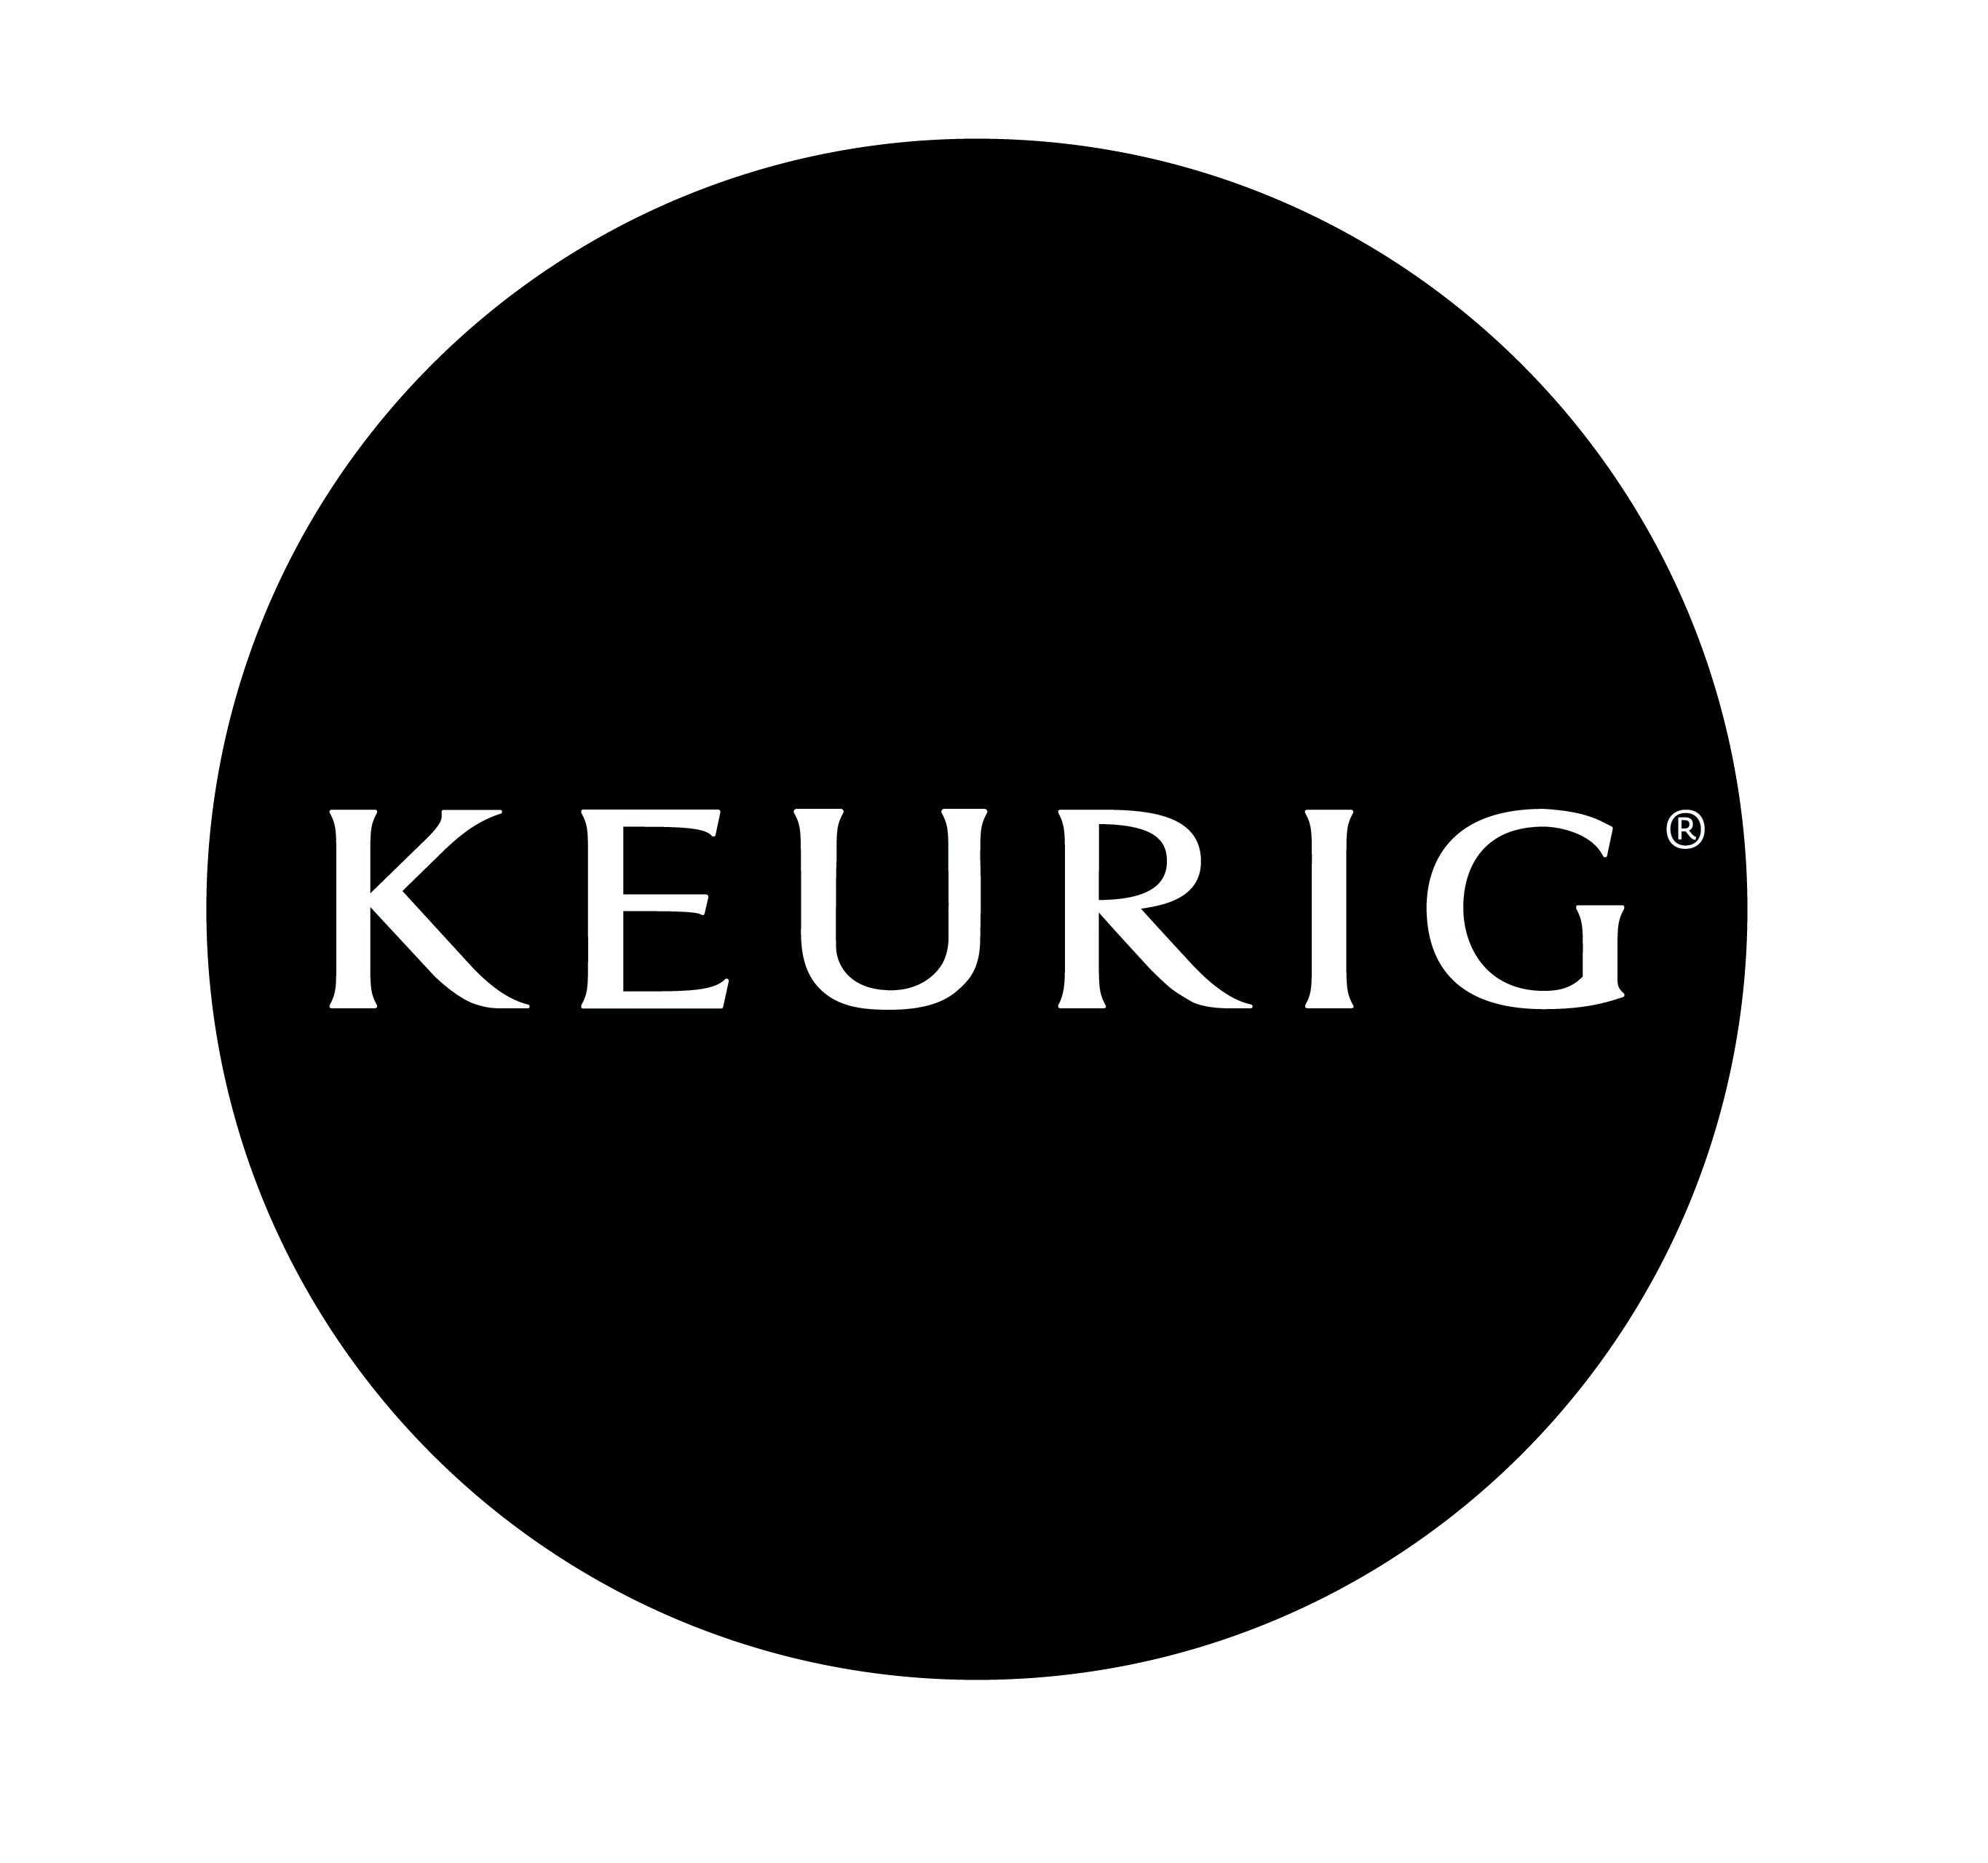 Keurig Coupon Canada: Up to 30% OFF on Home Brewers